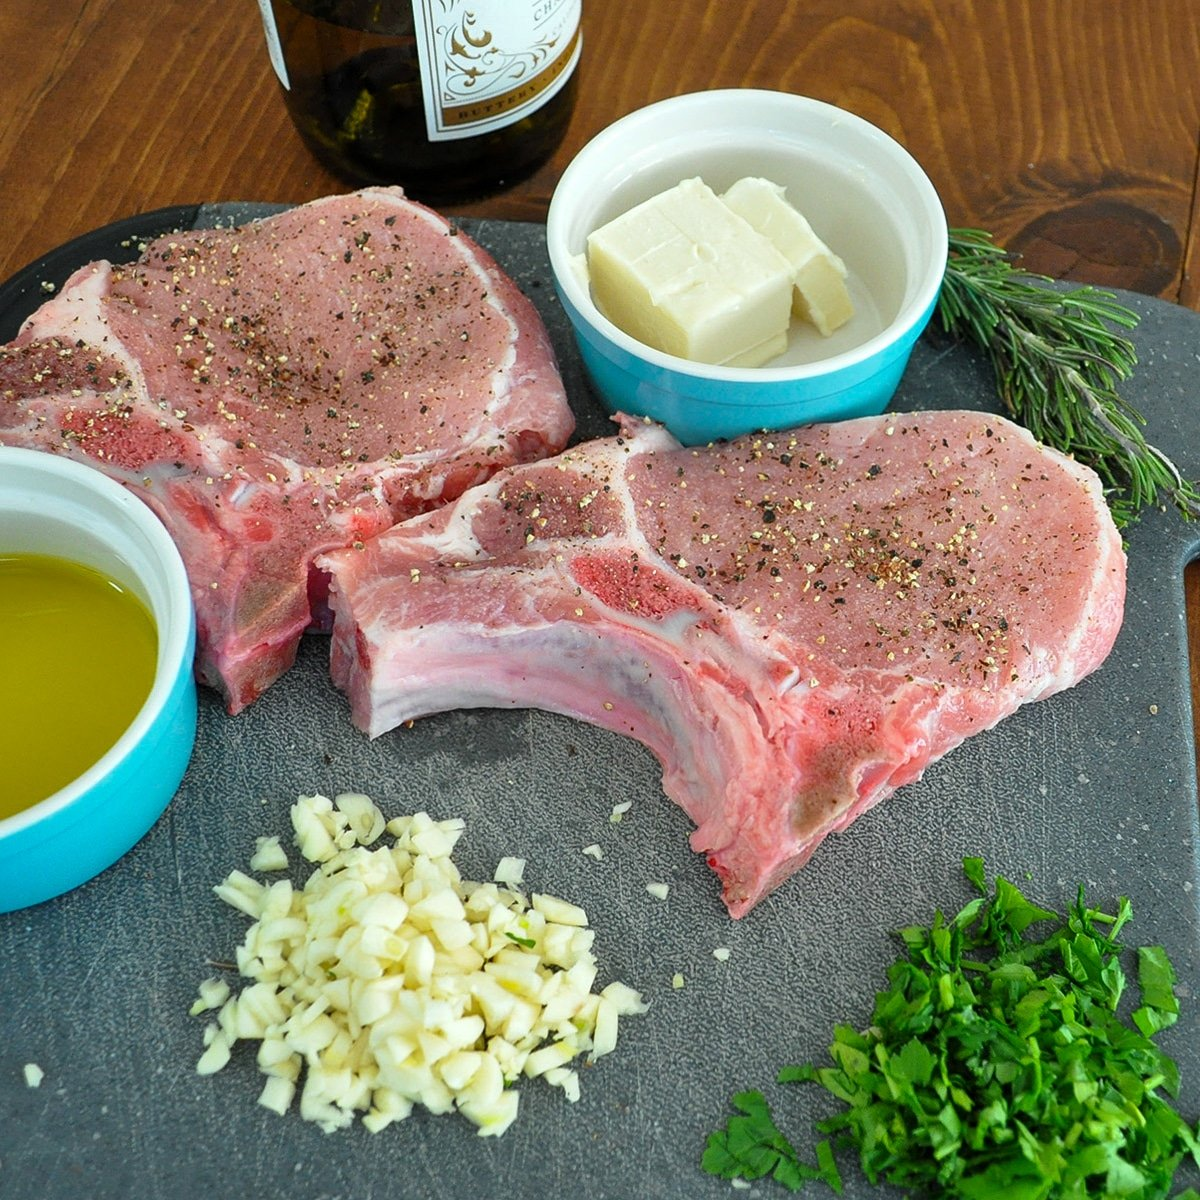 ingredients laid out with uncooked pork chops